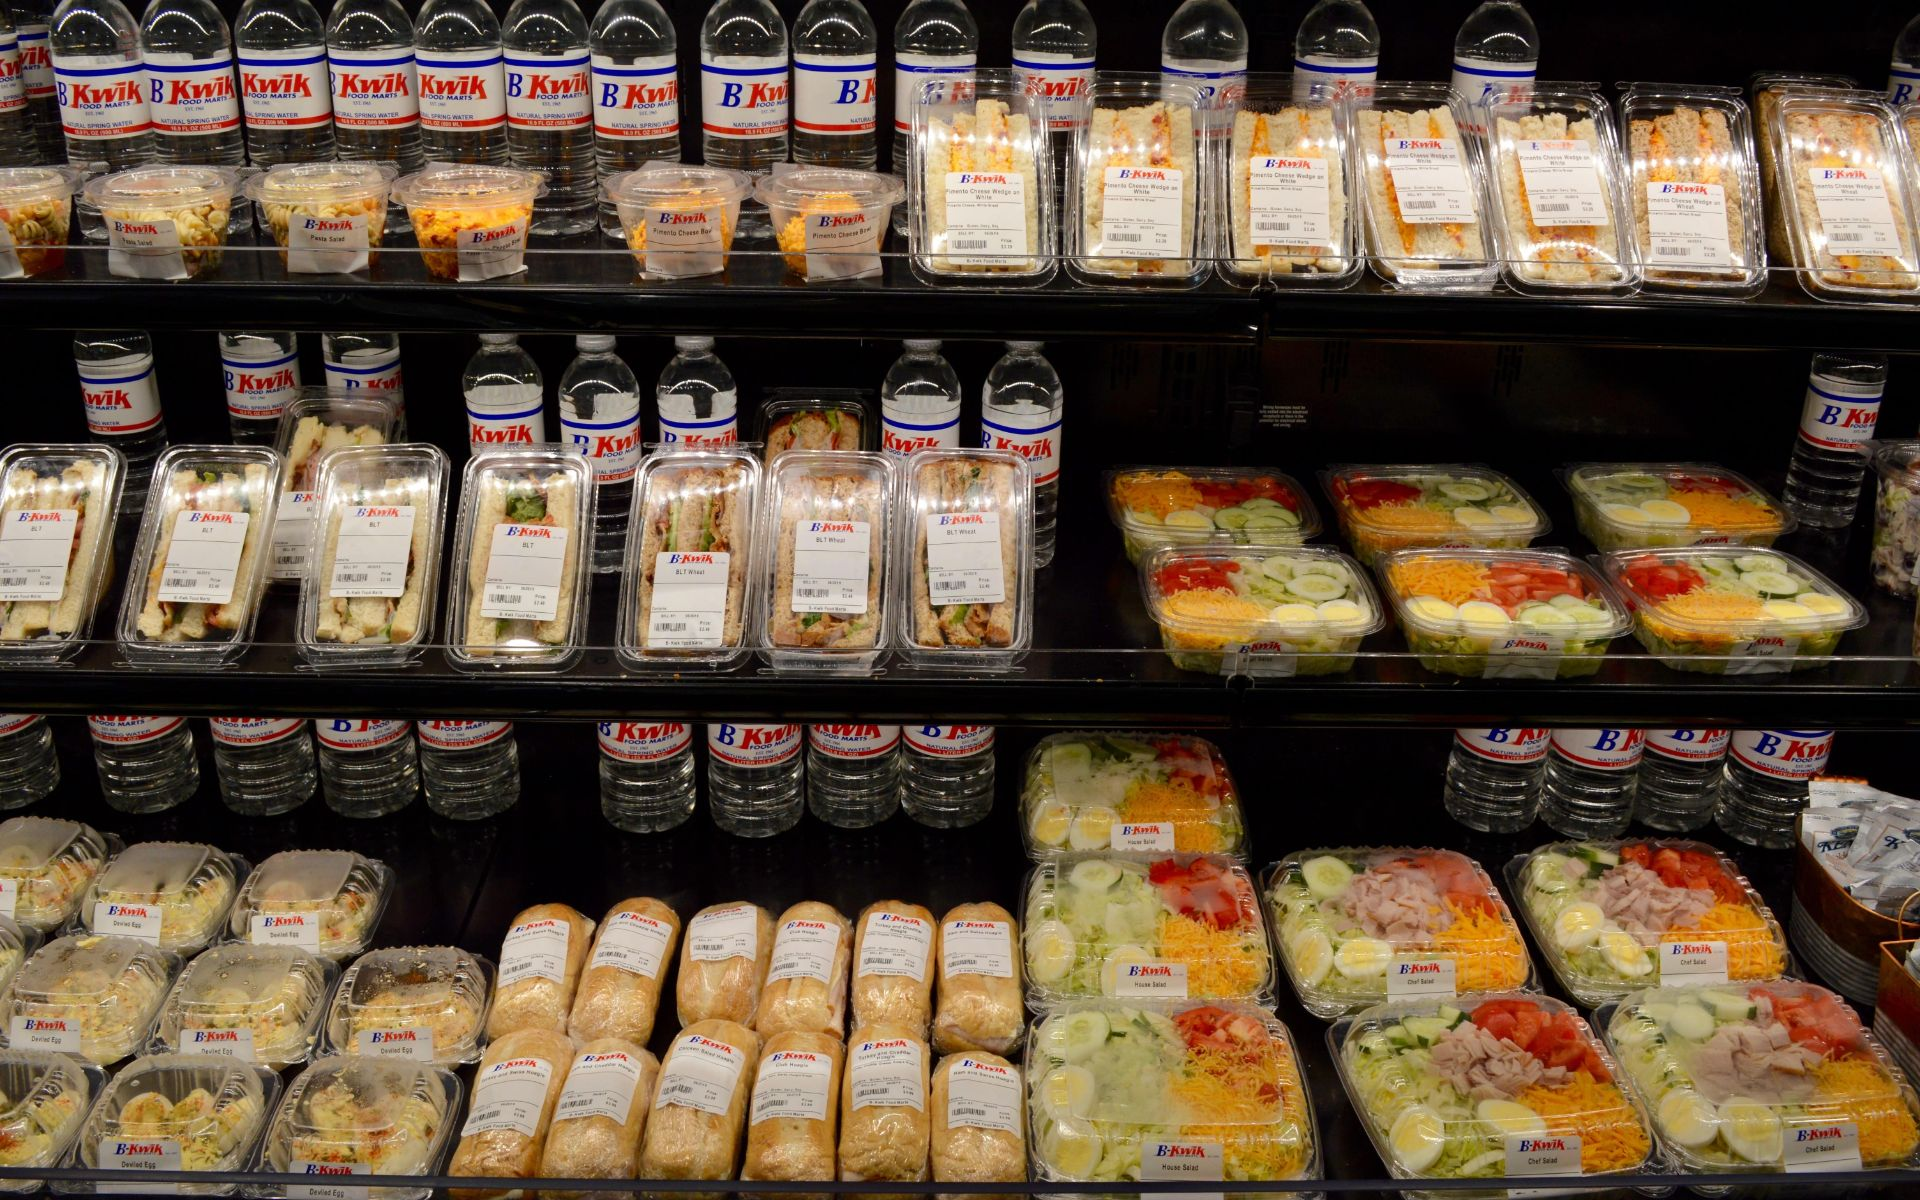 An assortment of pre-packaged sandwiches, salads and bottles of water on a shelf